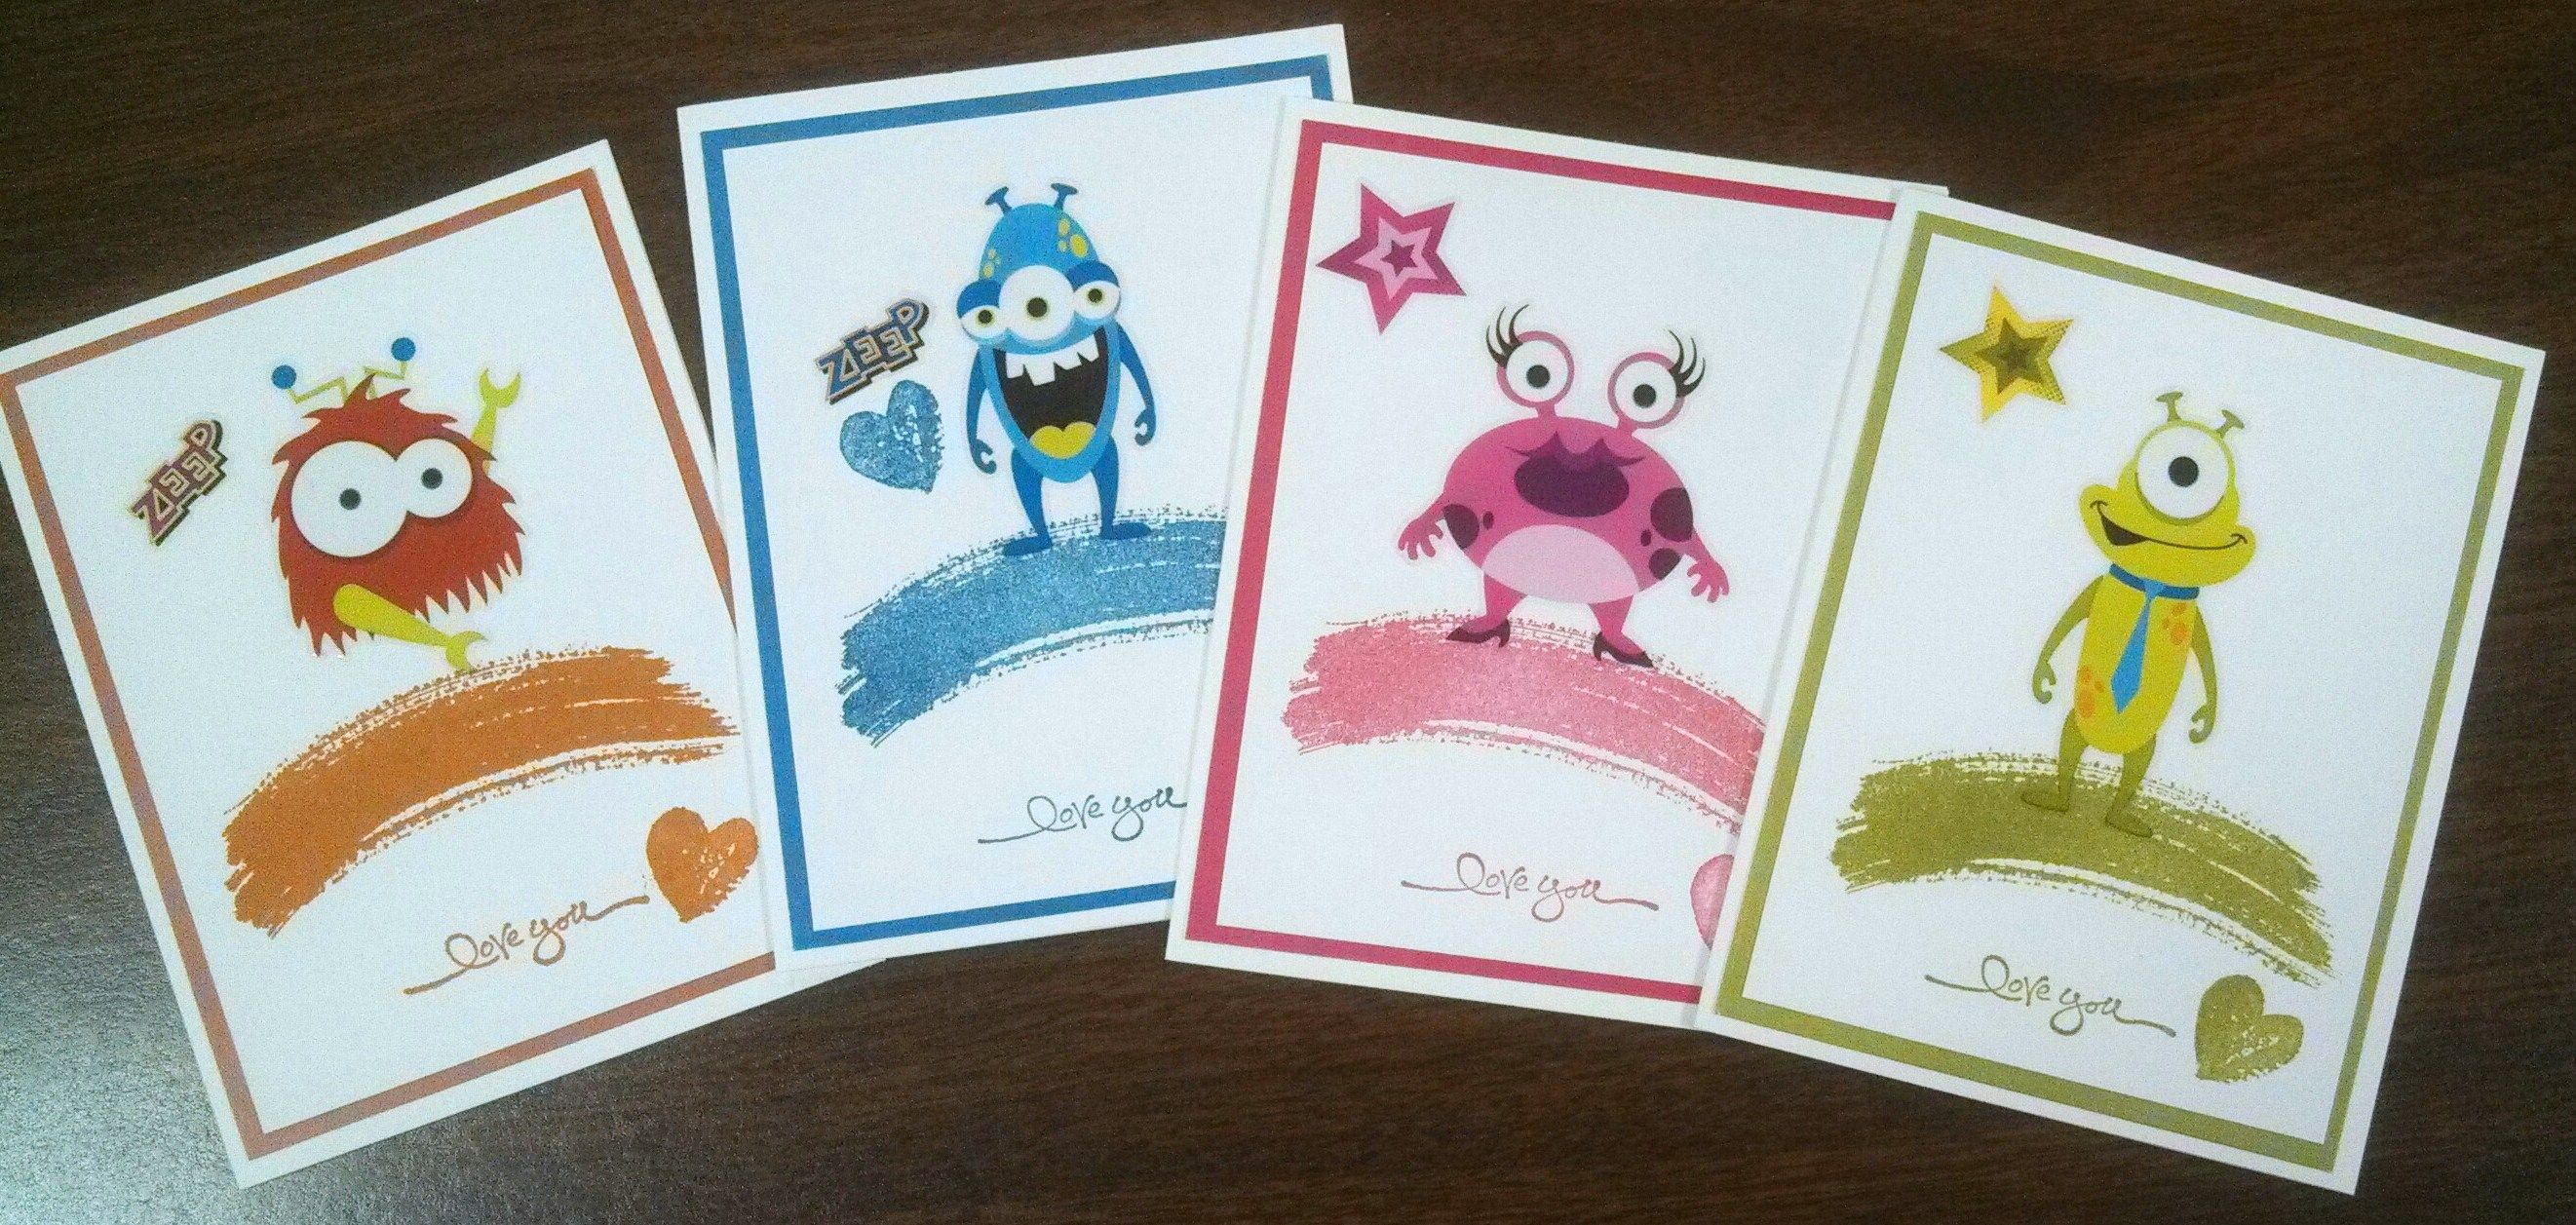 Love You cards made for OWH with the cutest little friendly monster stickers by The Paper Studio and the Work of Art stamp set by Stampin Up.  These made great cards for our Heroes to send back home to their kiddos